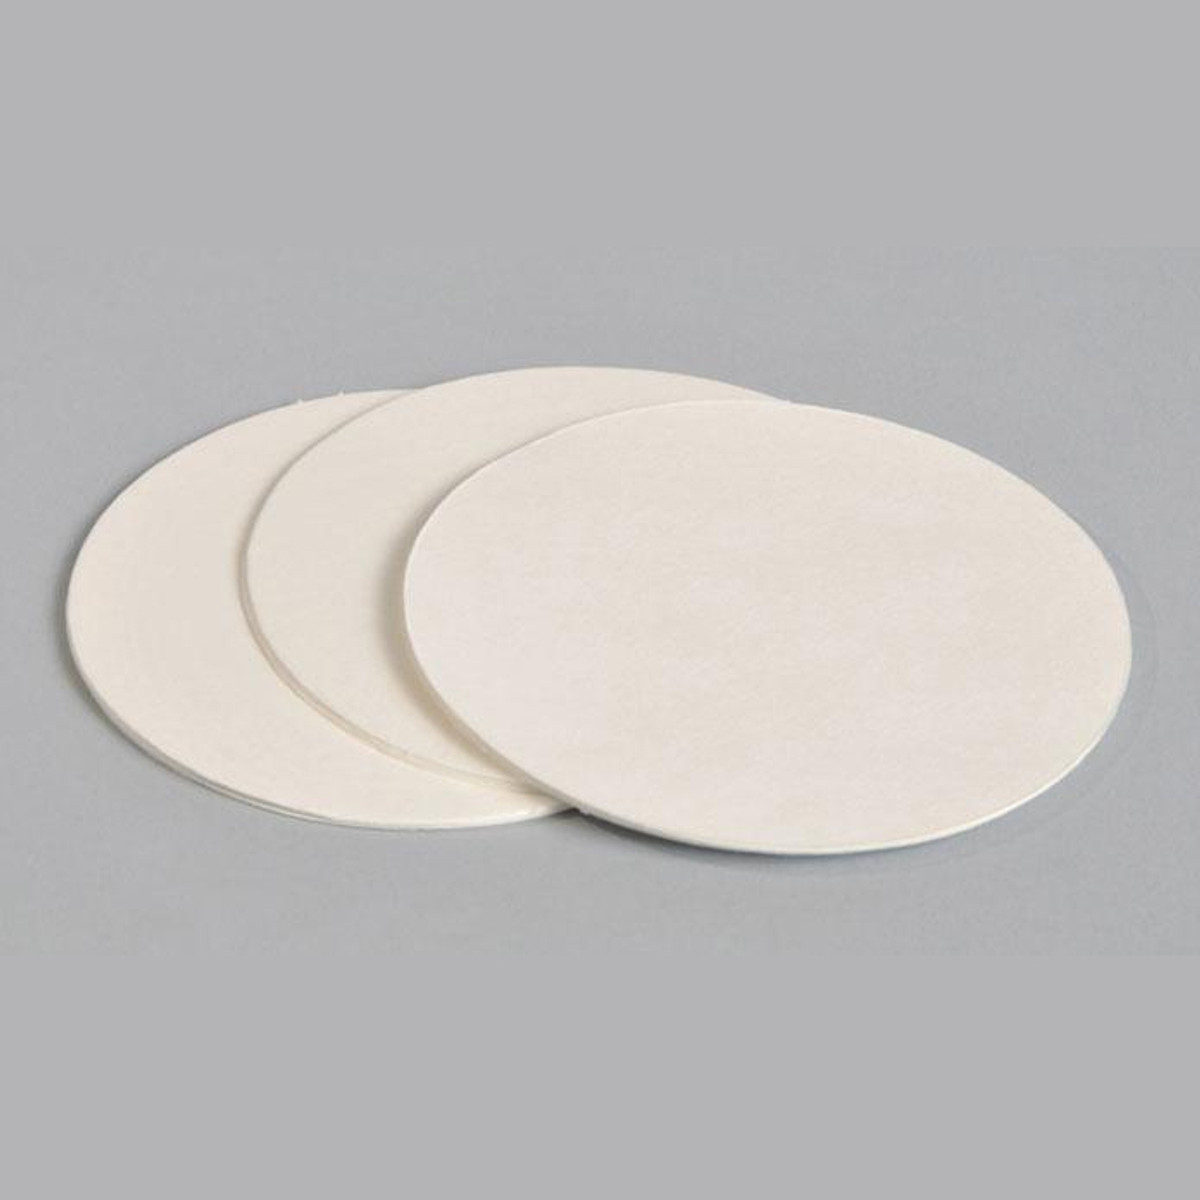 300 Pieces Qualitative Filter Paper 11 cm Diameter Round Filter Paper Medium Speed Paper Filter Circles Discs with 15-20 um Particle Retention for Lab Supply Oil Industry